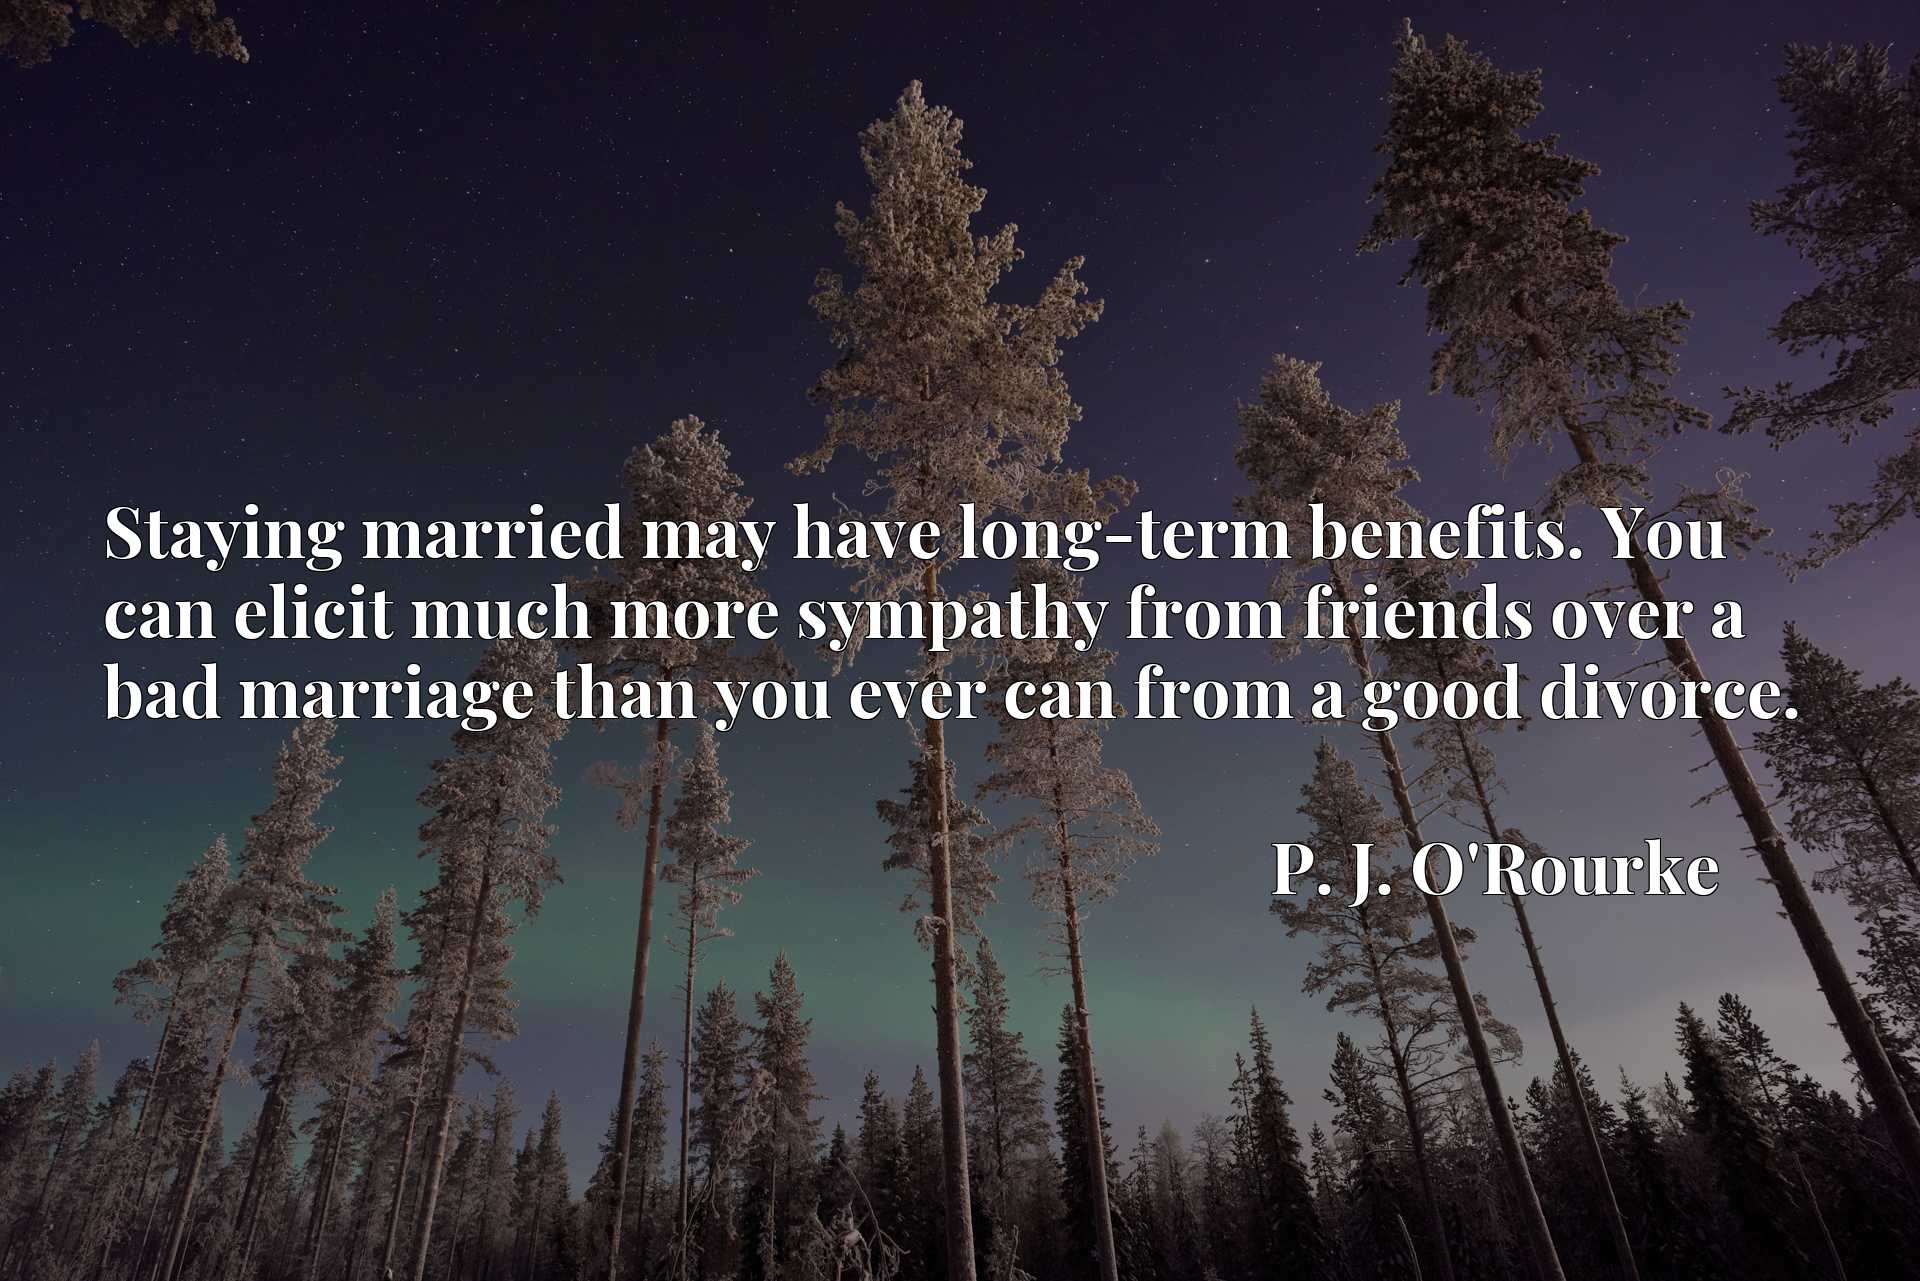 Quote Picture :Staying married may have long-term benefits. You can elicit much more sympathy from friends over a bad marriage than you ever can from a good divorce.